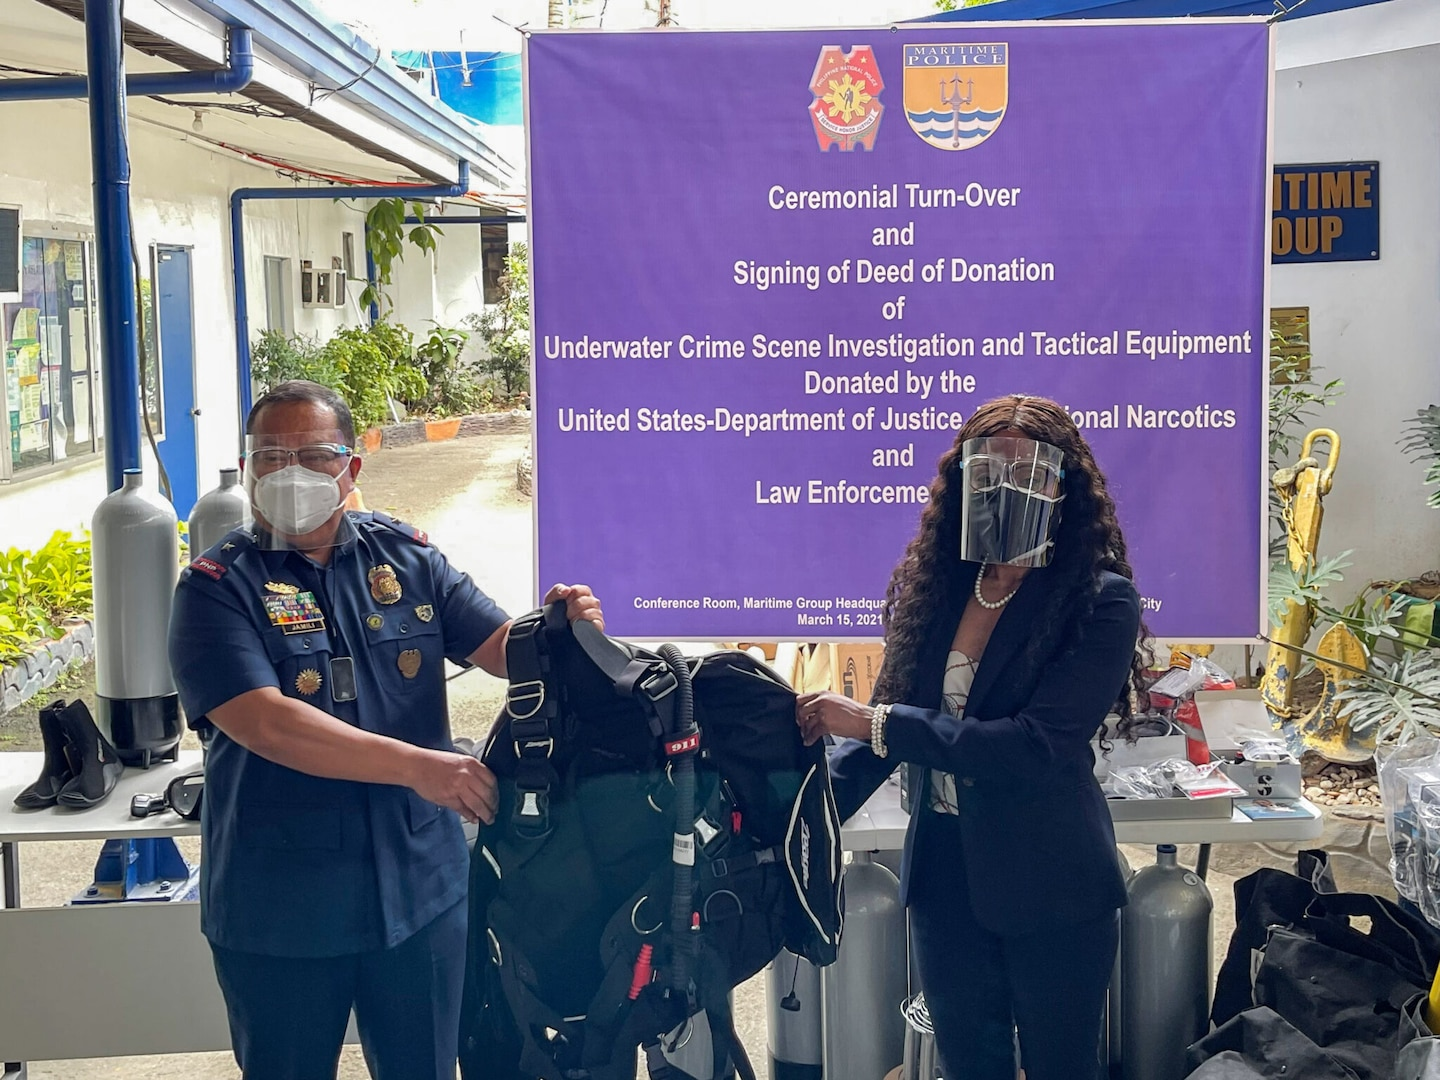 U.S. Hands Over Php3.7 Million in Equipment to Strengthen Philippine Maritime Law Enforcement Capability